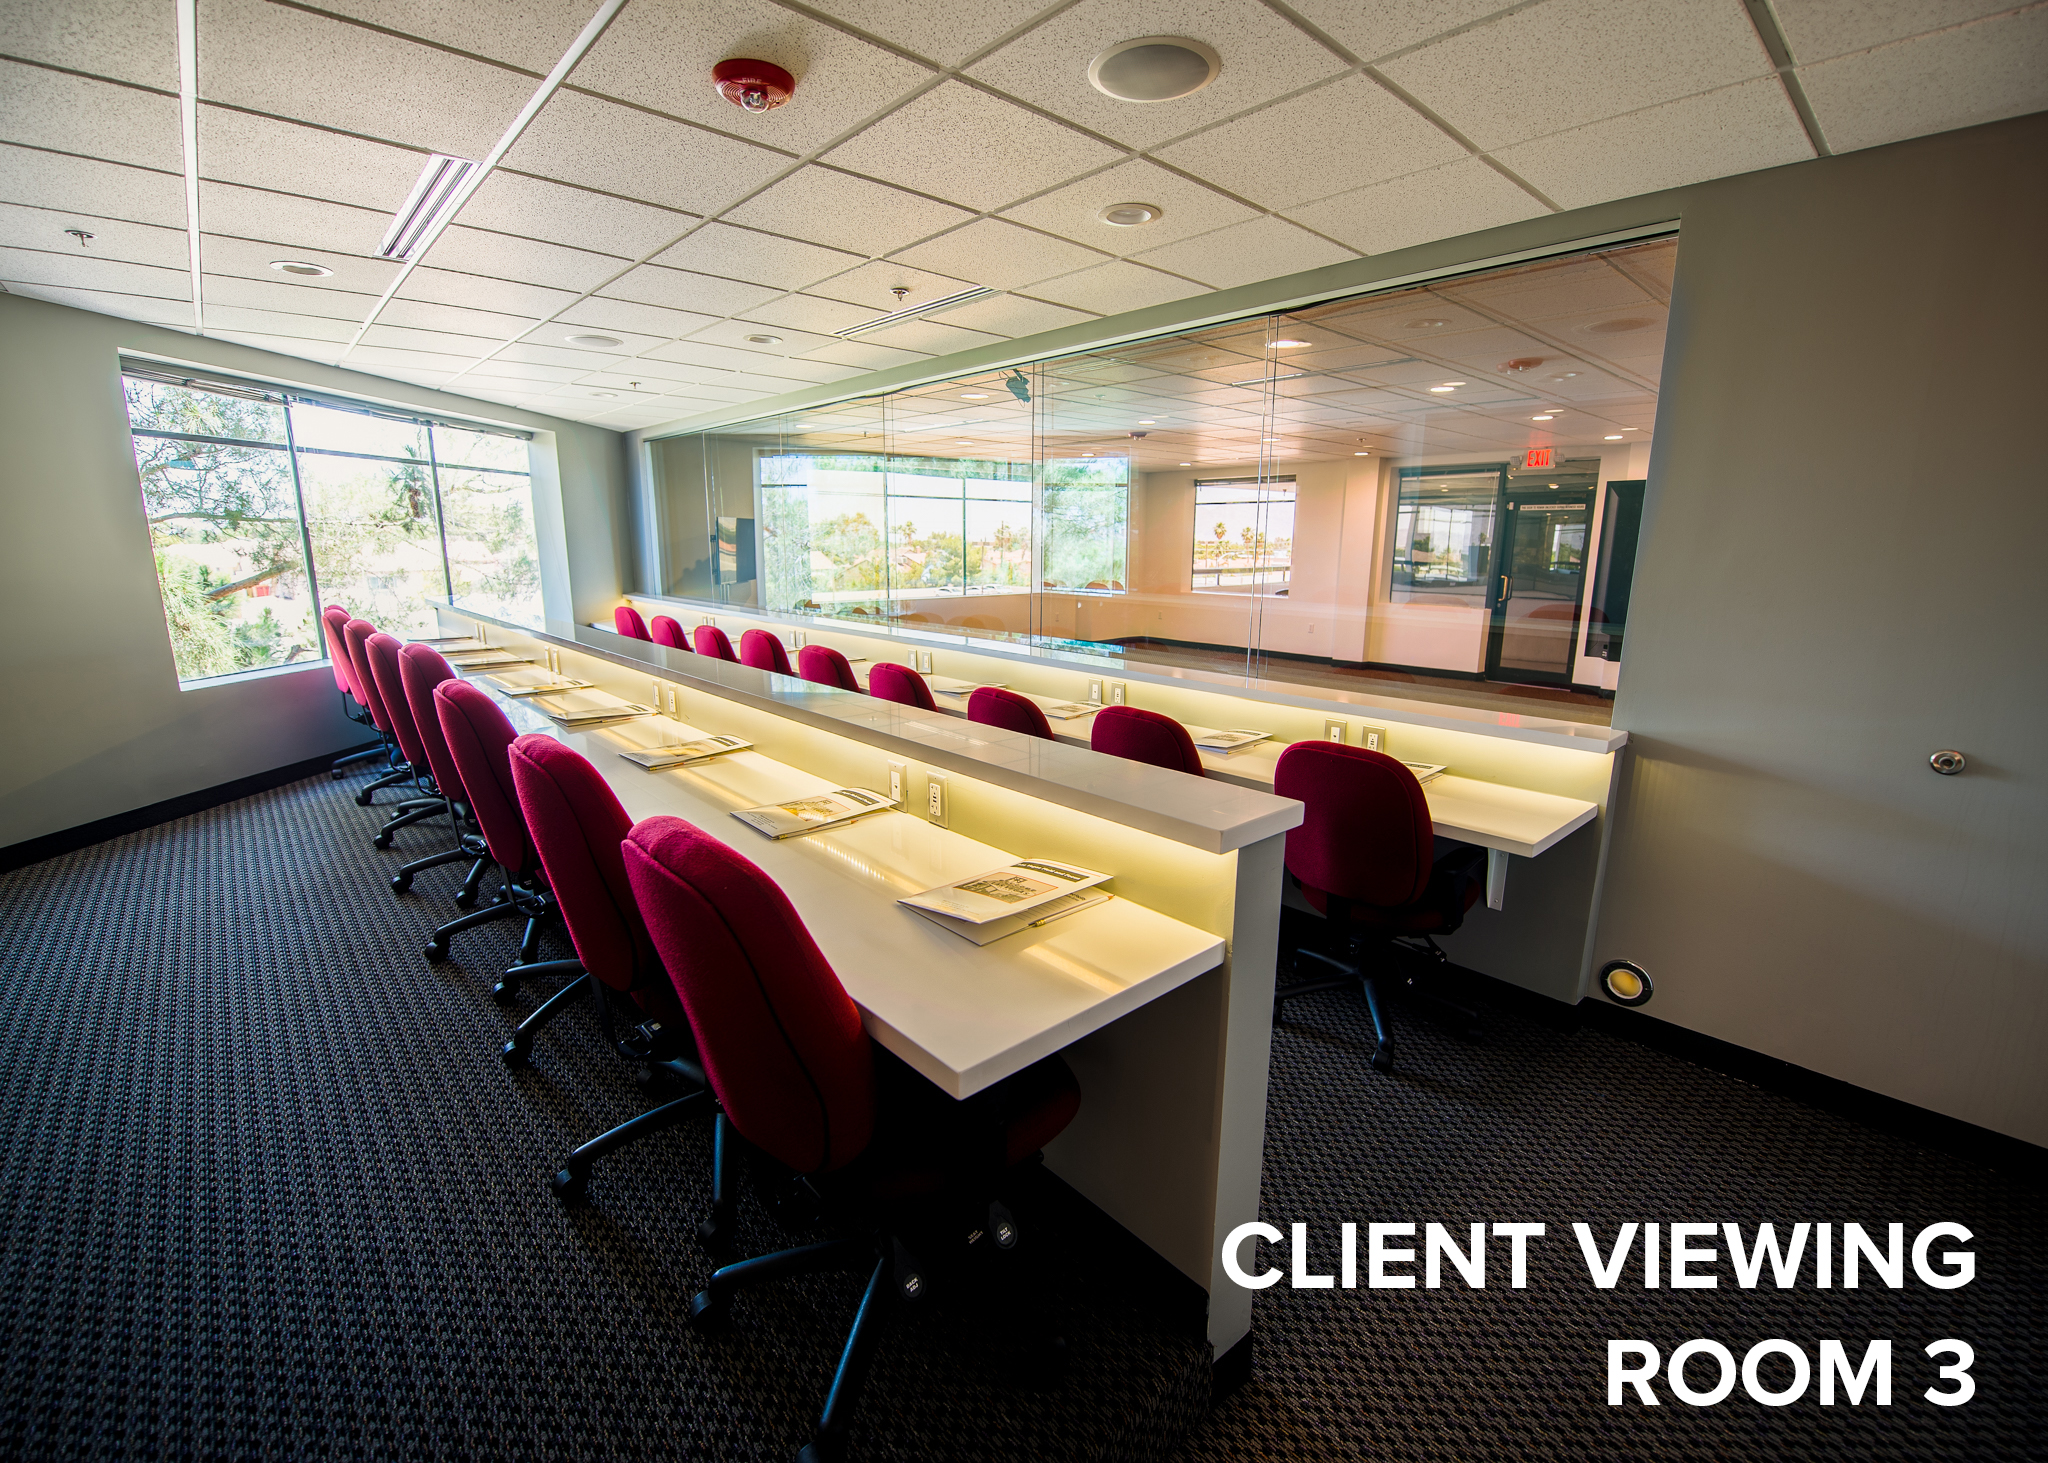 Client Viewing Room 3.jpg